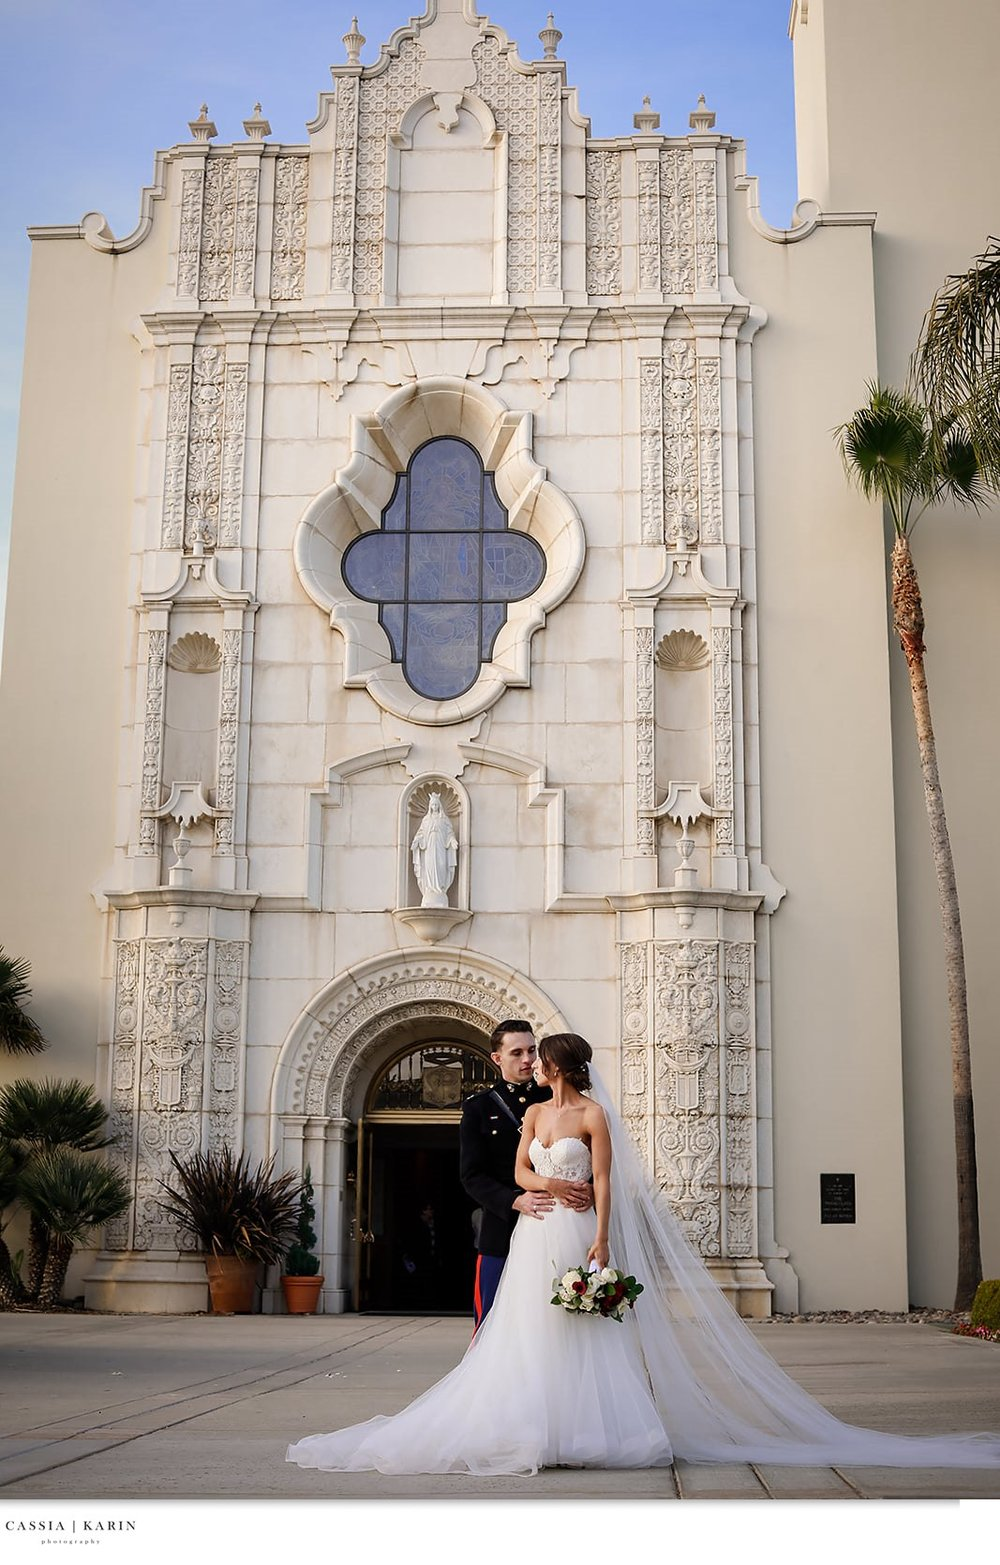 Brunette bride with groom outside the Immaculata Catholic Church in San Diego.  Bridal Beauty by Vanity Belle in Orange County (Costa Mesa) and San Diego (La Jolla). thevanitybelle.com